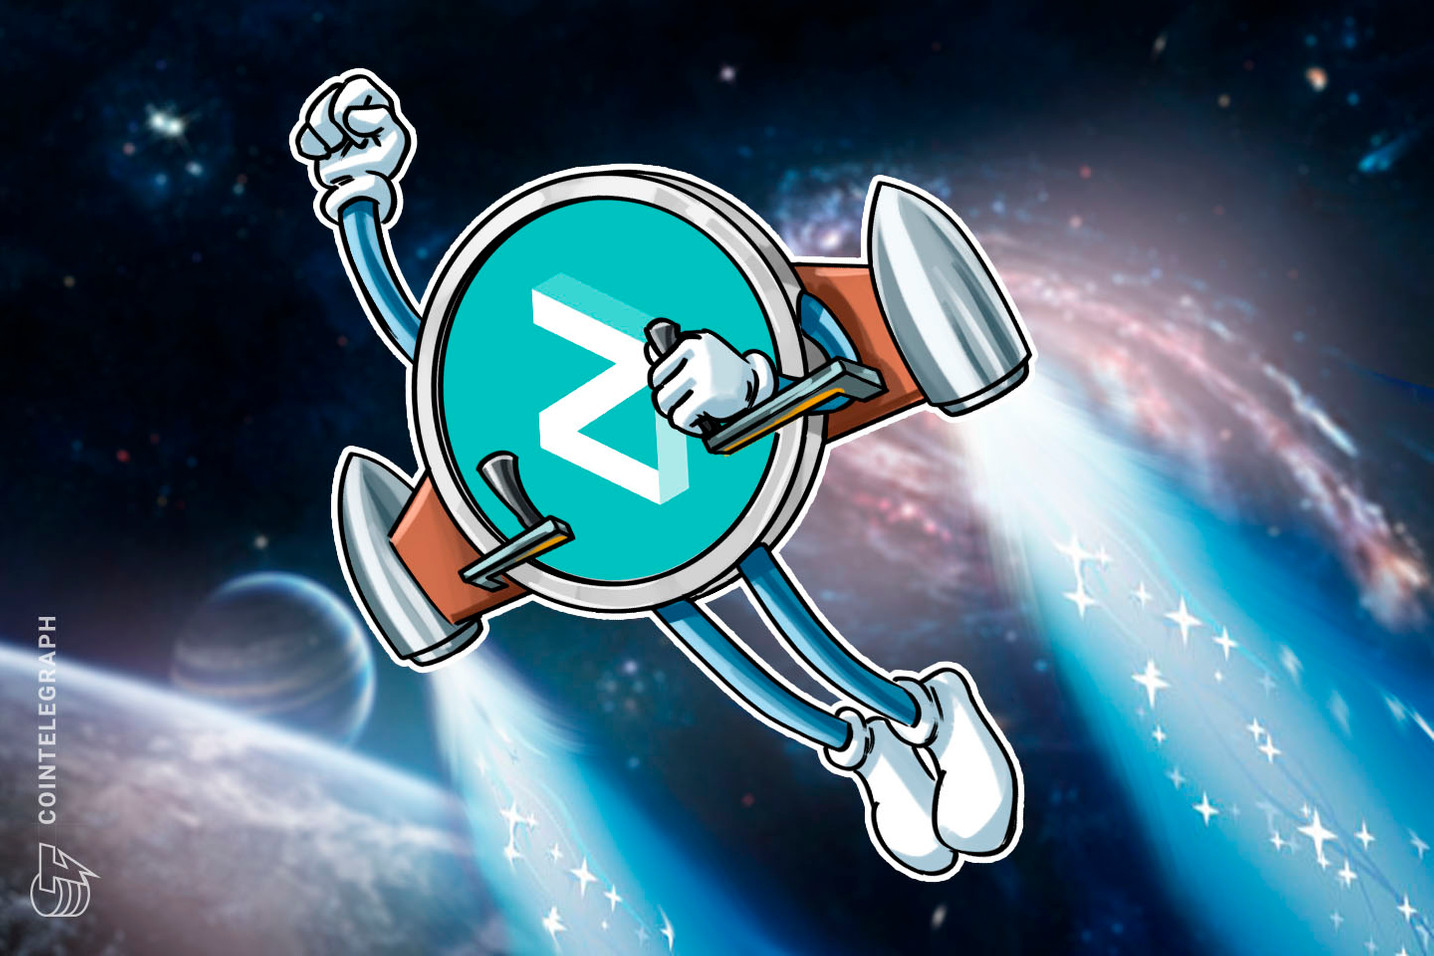 Zilliqa (ZIL) Beats Bitcoin With 950% Gains Since March, What's Next?